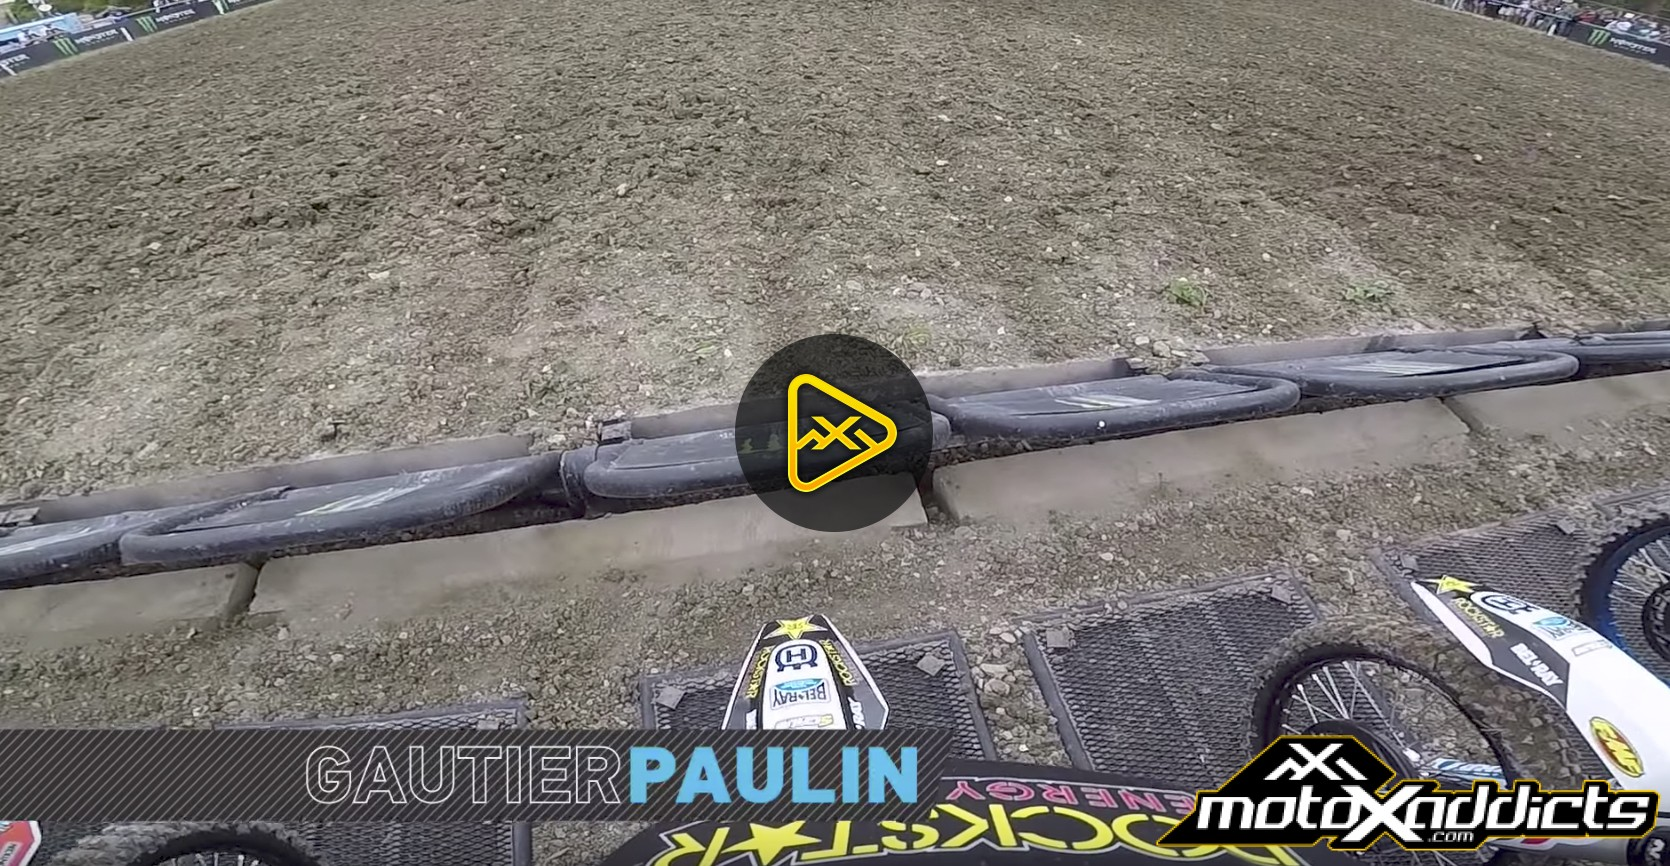 GoPro: Gautier Paulin at 2017 MXGP of Russia